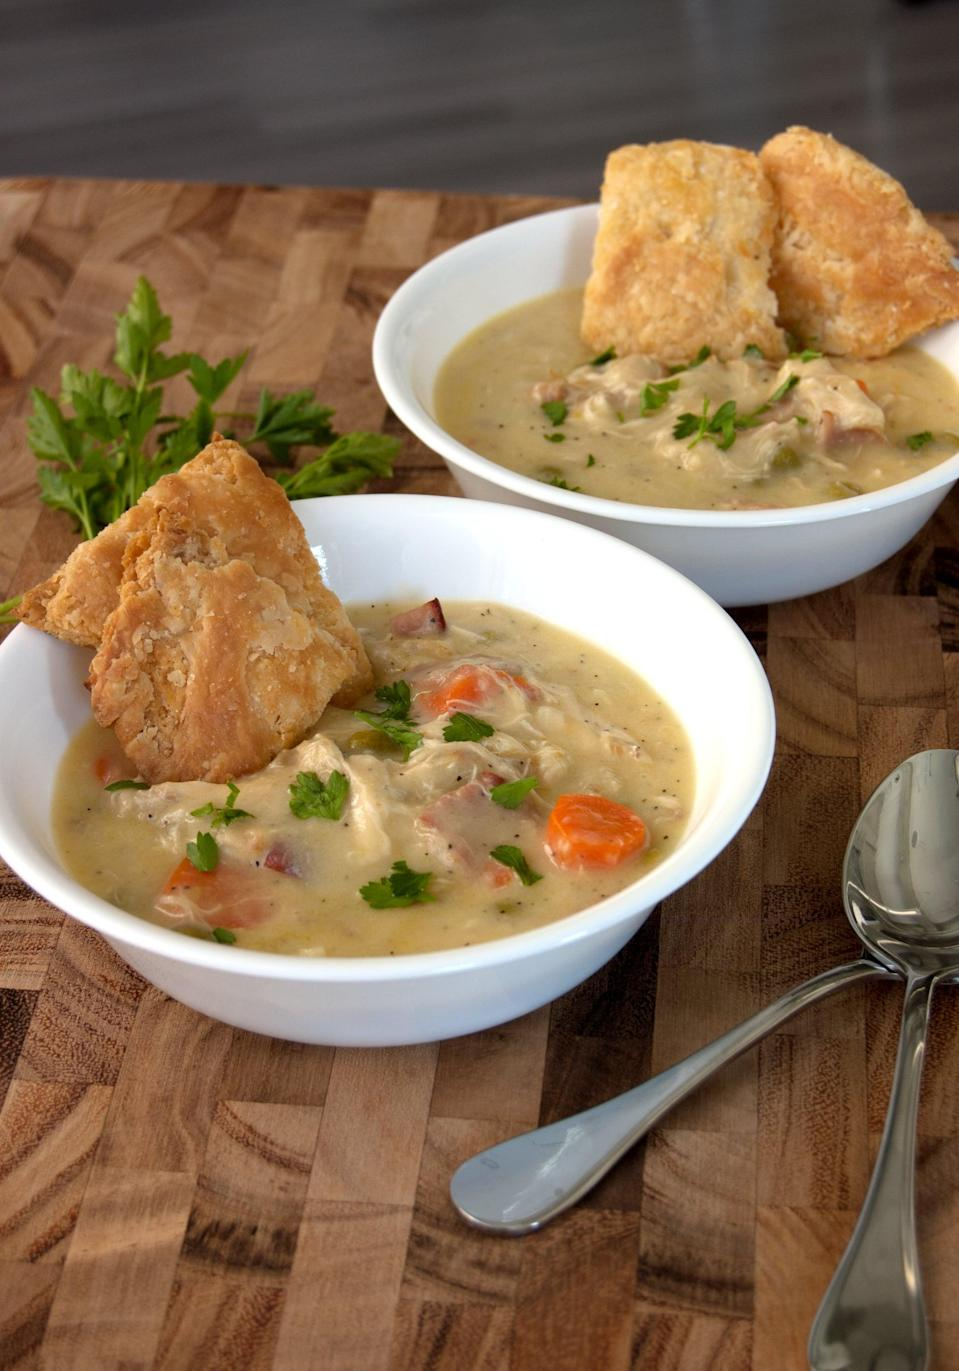 """<p>Chrissy calls herself the soup master, and this recipe proves why. It's everything you love about chicken pot pie, but in a comforting soup format. Use the buttery pie crust crackers to scoop up every last drop. </p> <p><strong>Get the recipe:</strong> <a href=""""https://www.popsugar.com/food/Chicken-Pot-Pie-Soup-Recipe-40318468"""" class=""""link rapid-noclick-resp"""" rel=""""nofollow noopener"""" target=""""_blank"""" data-ylk=""""slk:Chrissy Teigen's chicken pot pie soup"""">Chrissy Teigen's chicken pot pie soup</a></p>"""